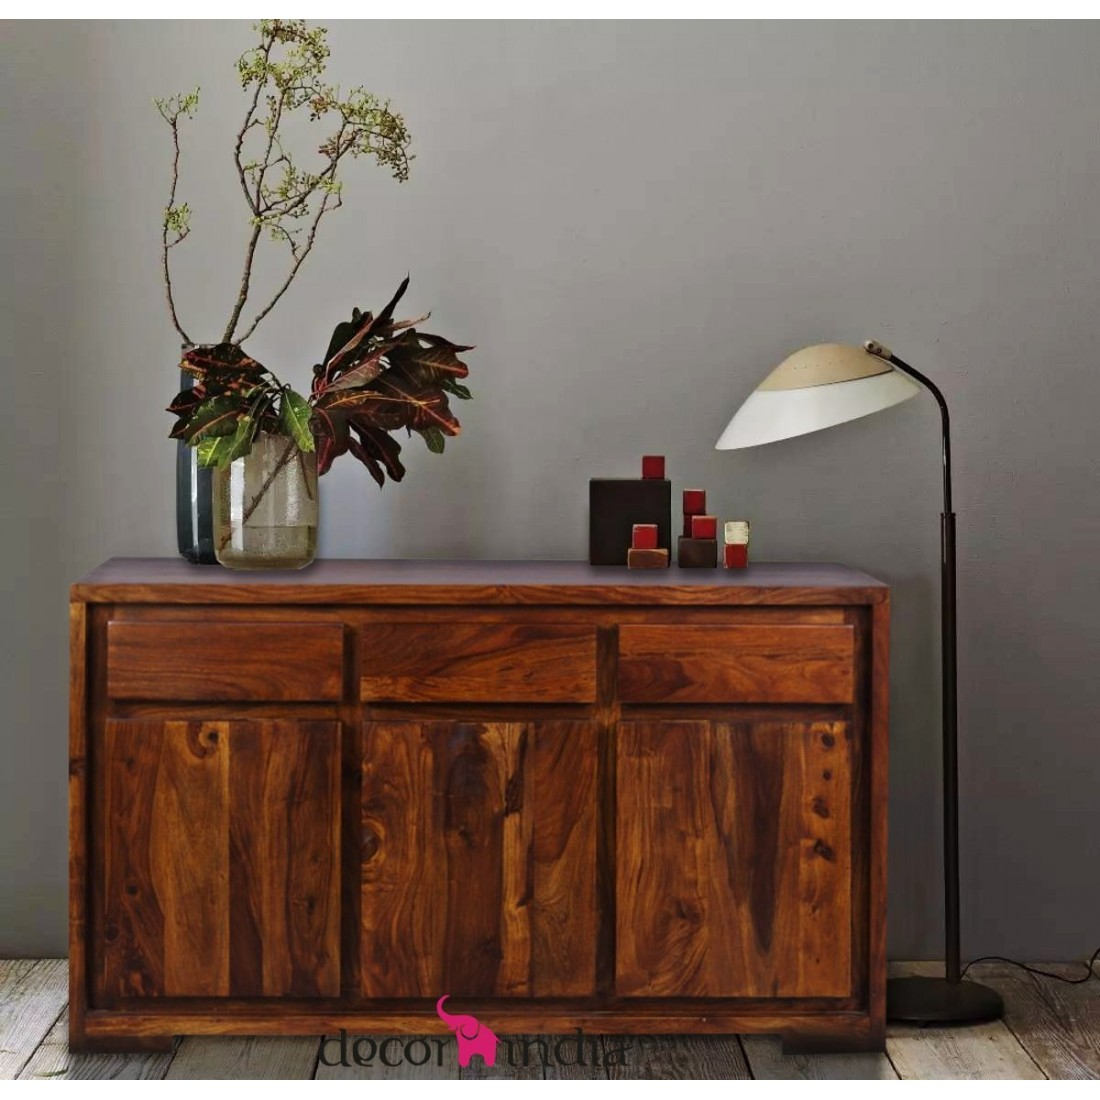 cupboard designs creative with for room indian india interior tv living wooden design wall furniture